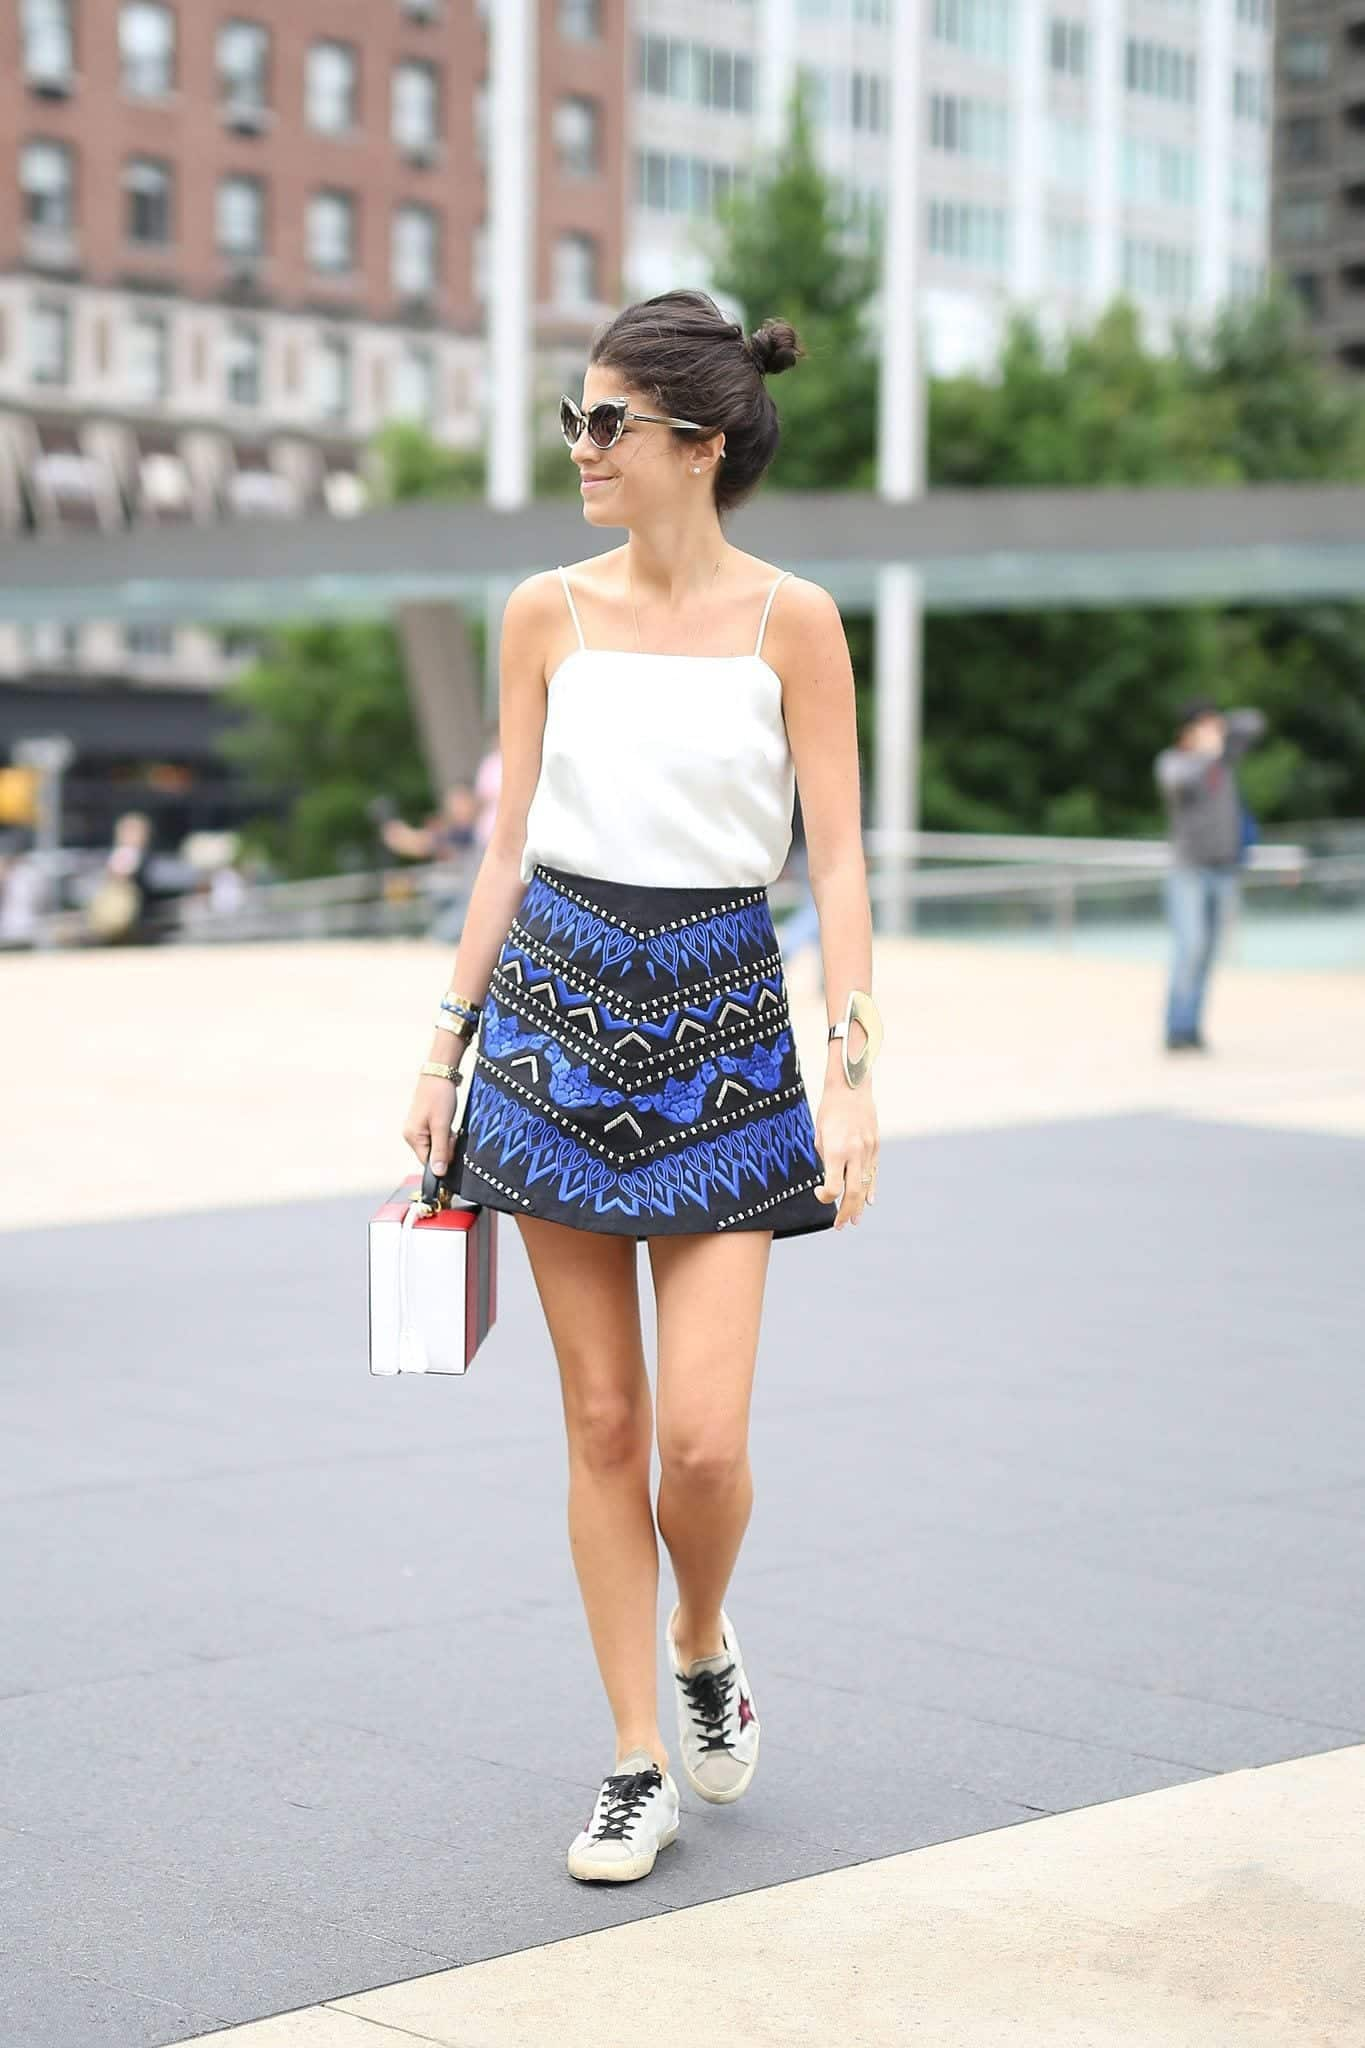 outfits with tennis skirt 24 ways to style tennis skirt